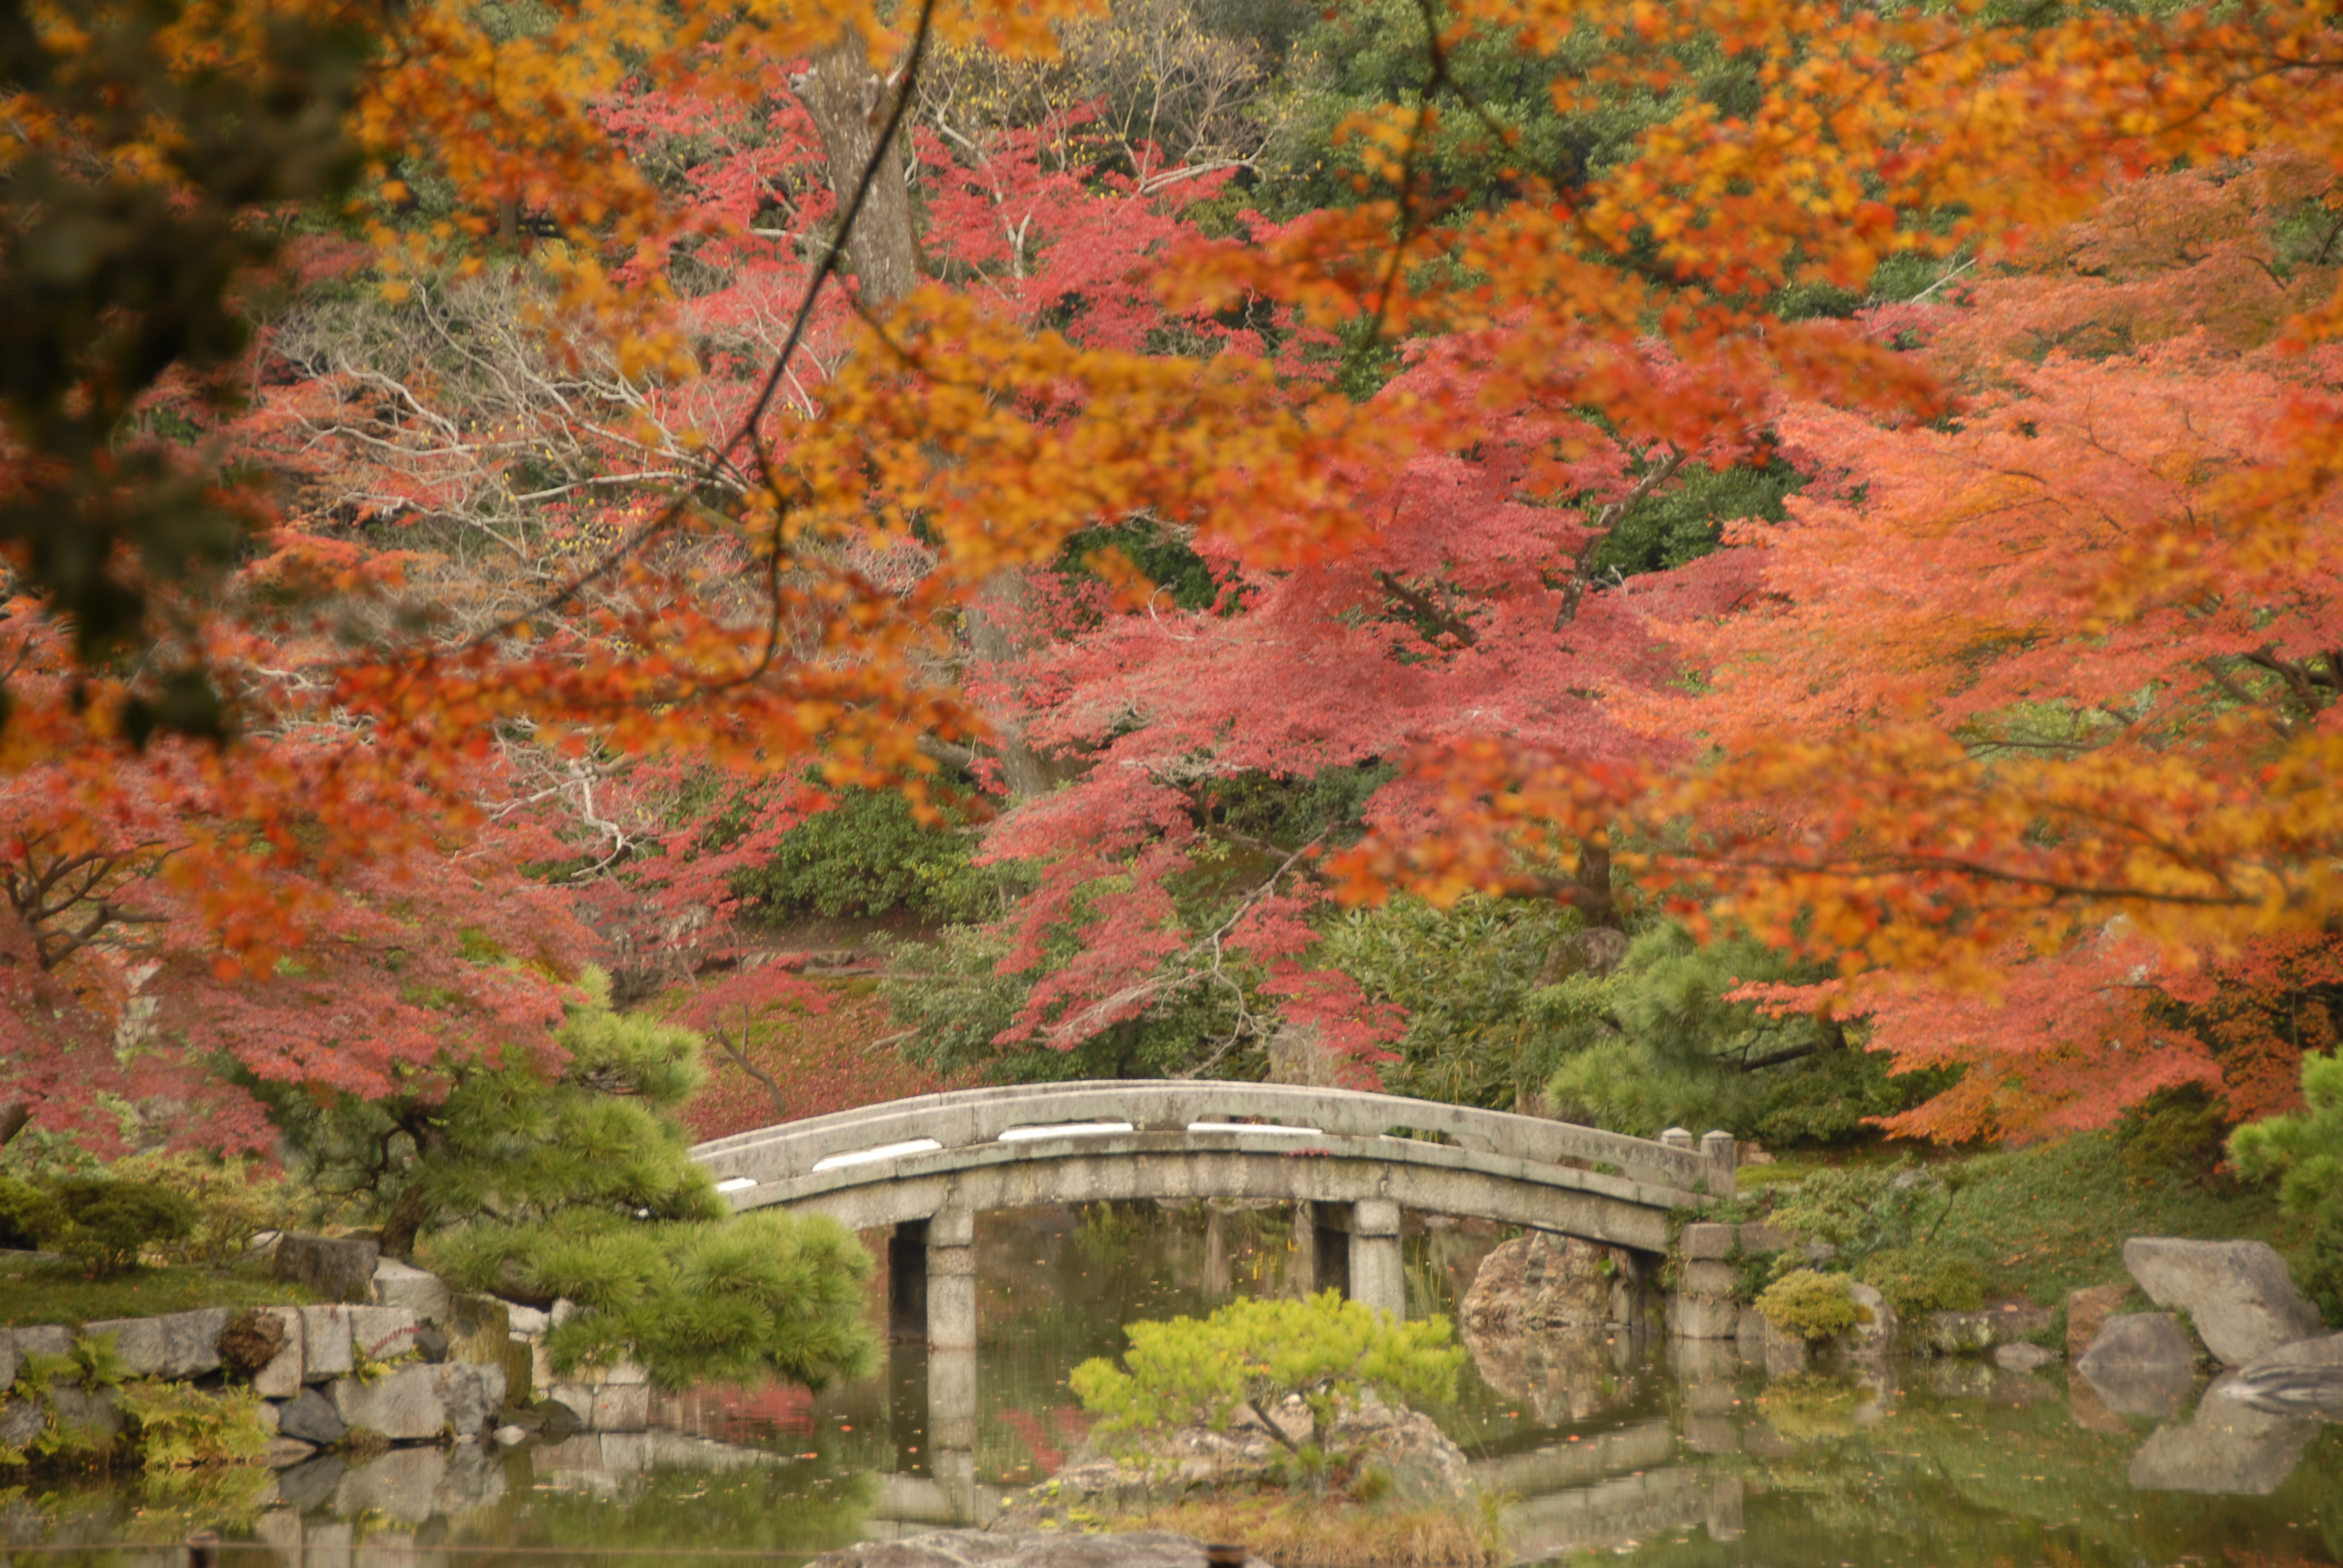 November Fall Wallpaper For Computer Sentō Imperial Palace Botanic Garden In Kyoto Thousand